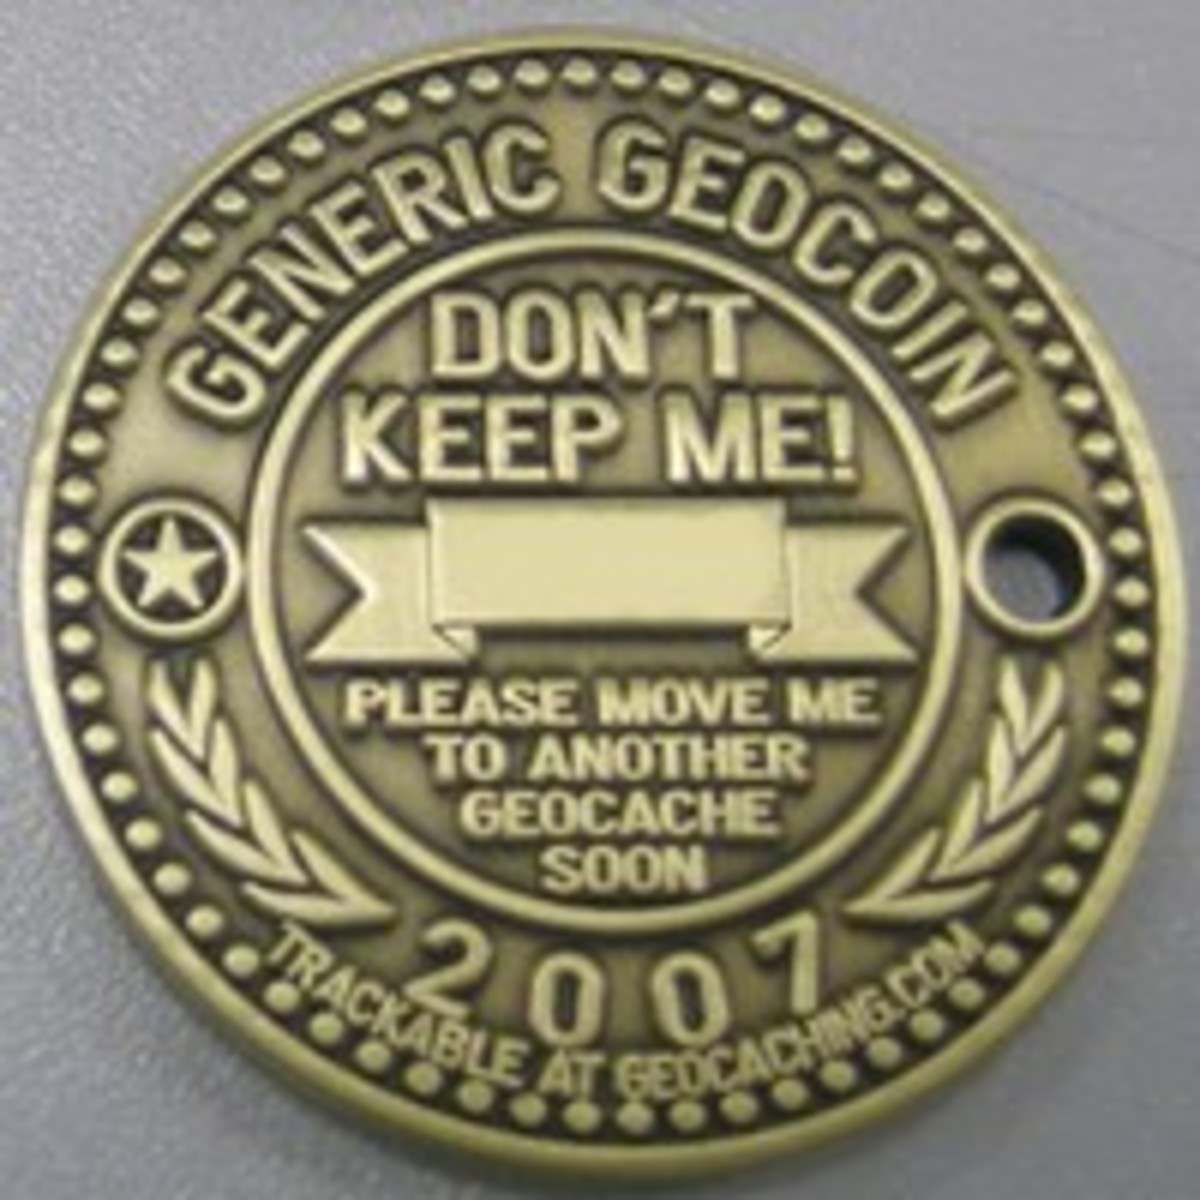 Not designed to be kept, geocoins should hop from geocache to geocache.